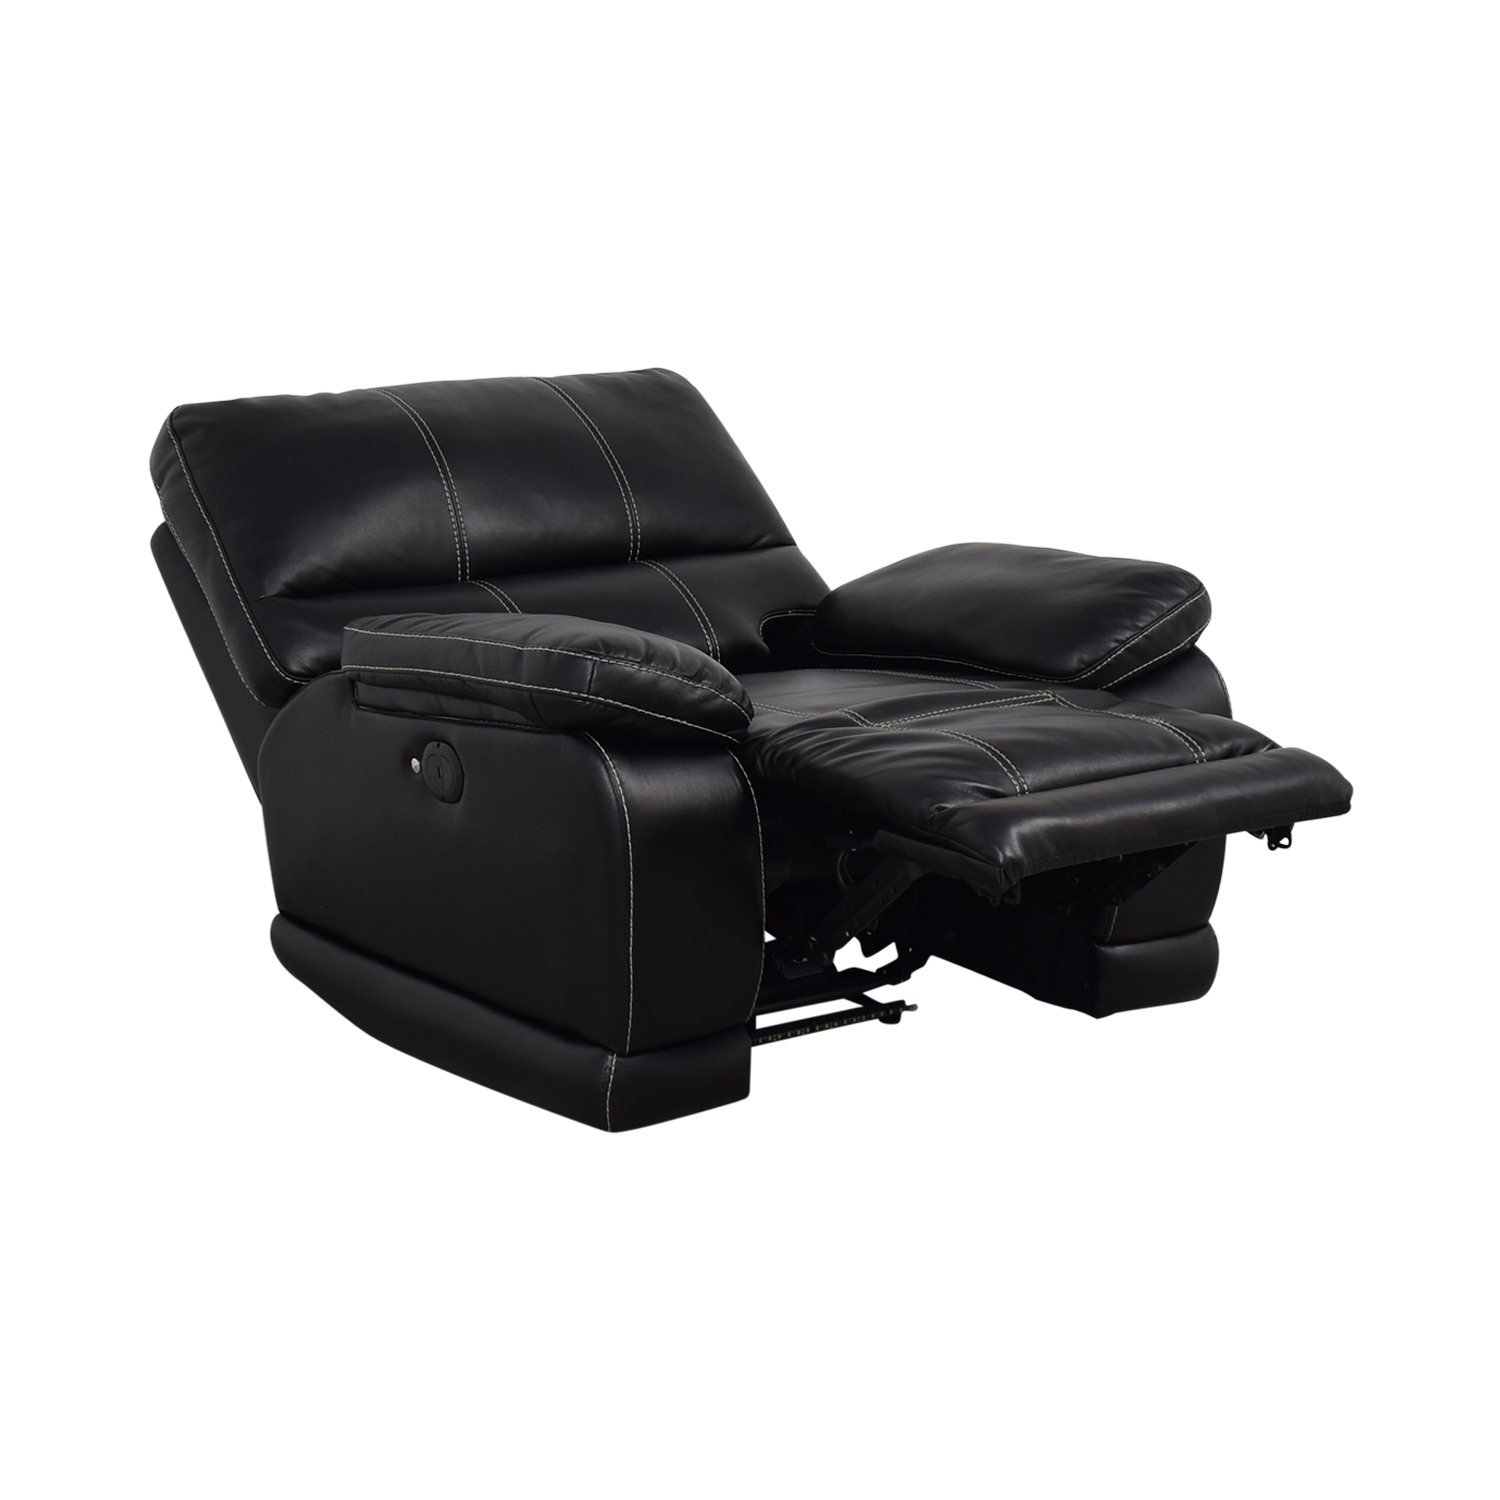 Klaussner Klaussner Black Reclining Chair for sale